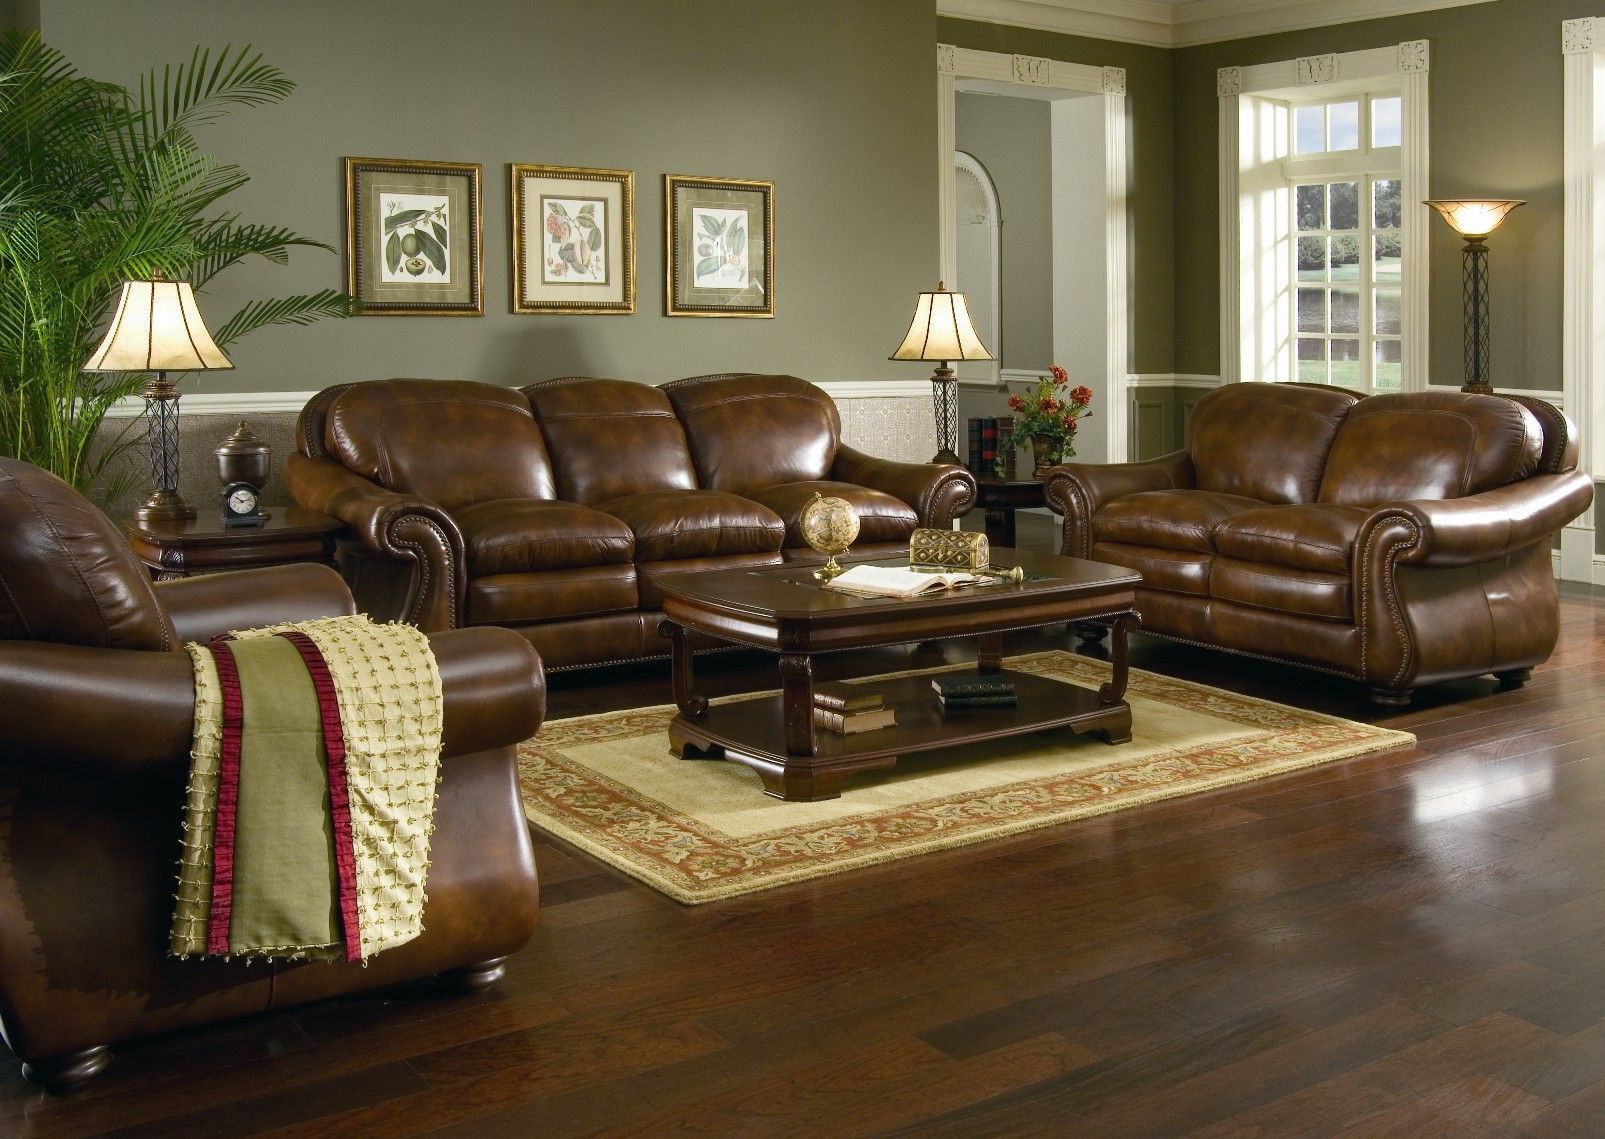 Living Room Decorating Ideas For Dark Brown Sofa brown leather sofa set for living room with dark hardwood floors